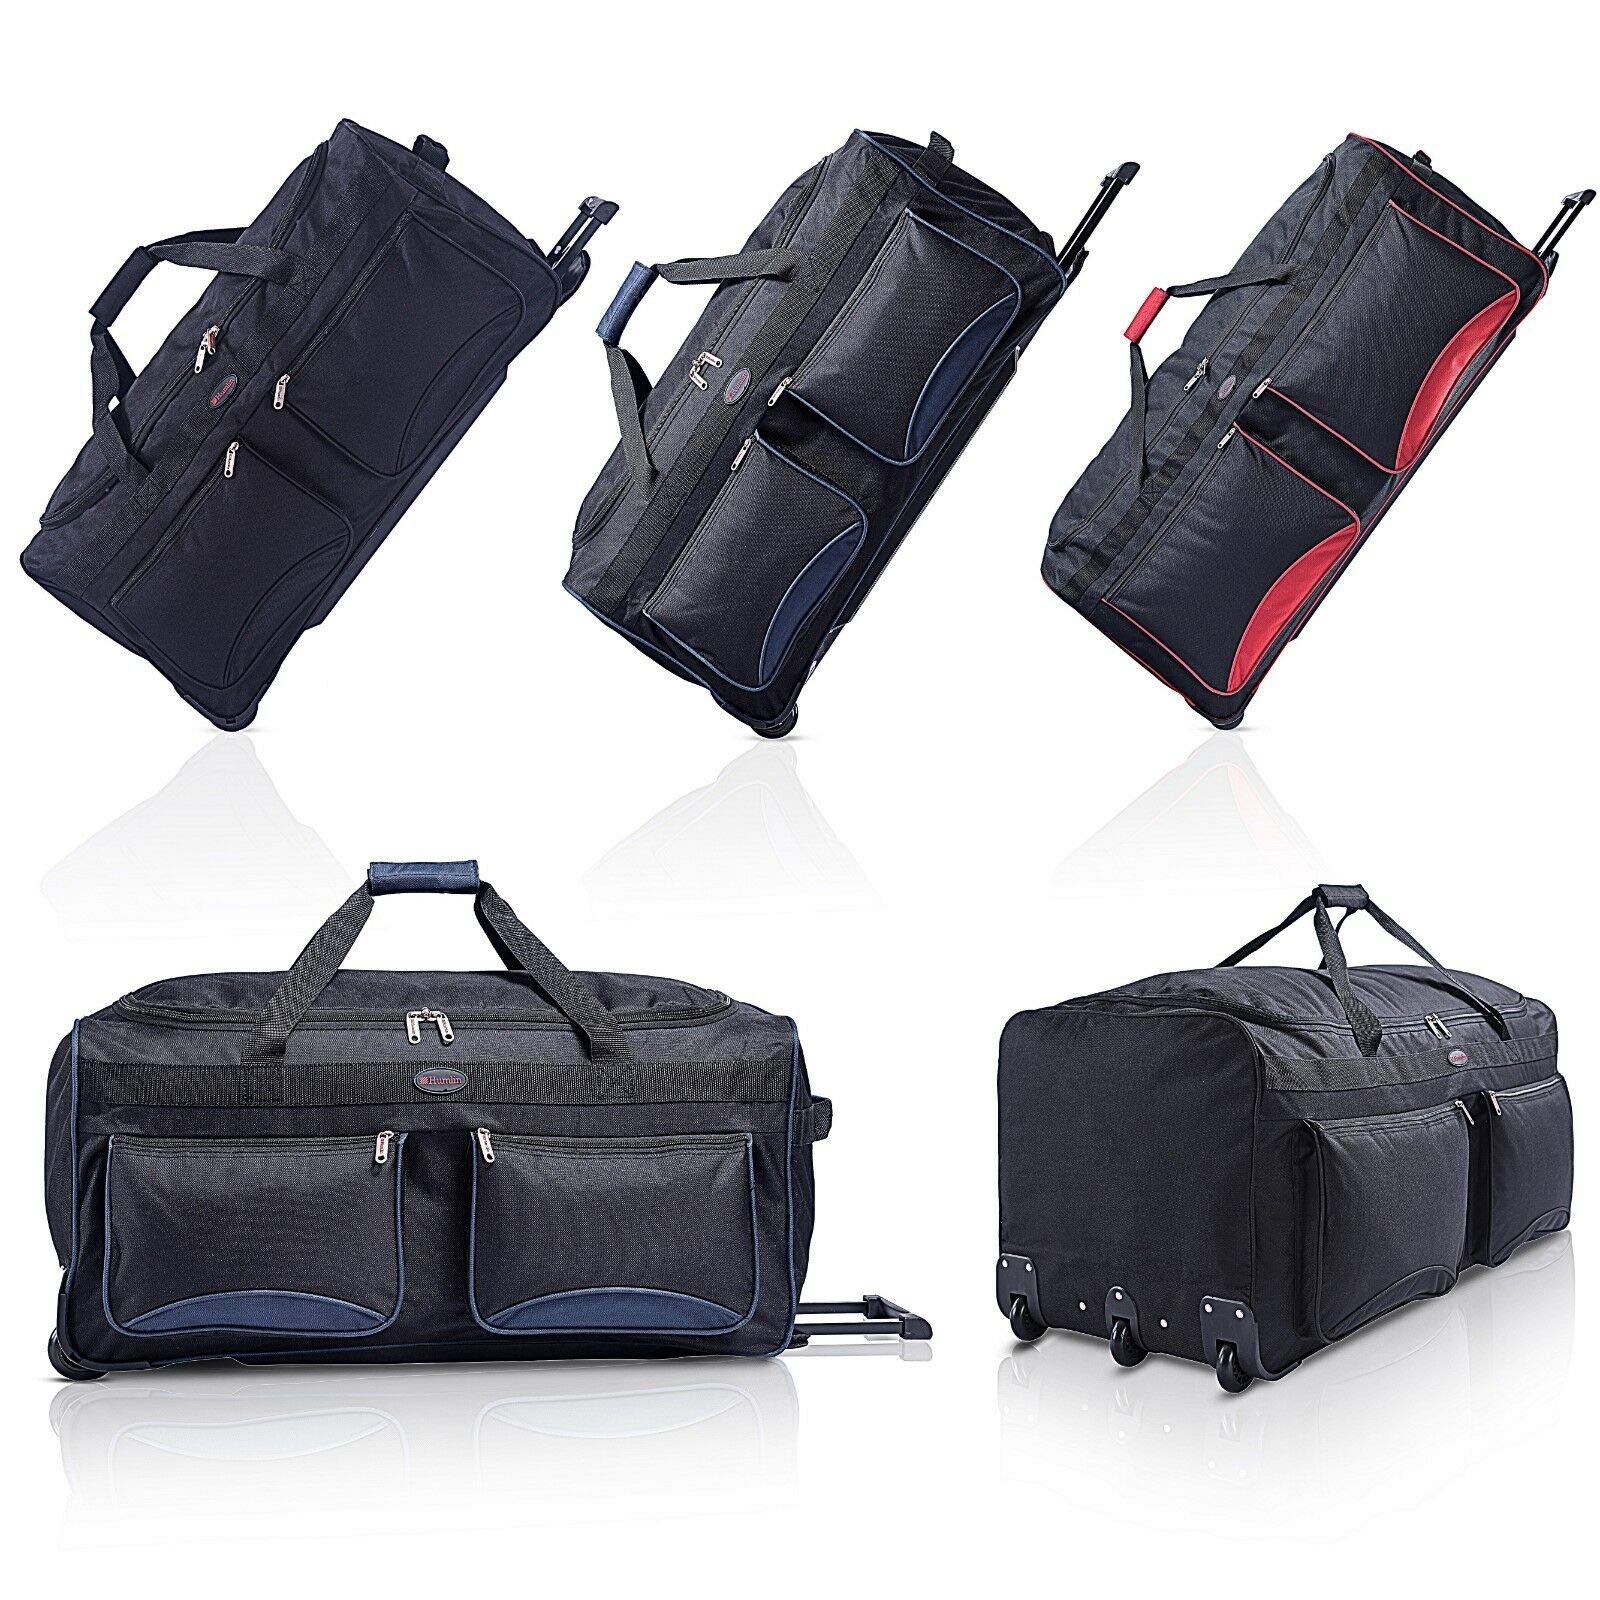 df6914c2c205 Travel Duffel Bag by HumlinTM | Wheeled Holdall | Lightweight Duffle with  Wheels for Men and Women - Luggage and Travel Accessories